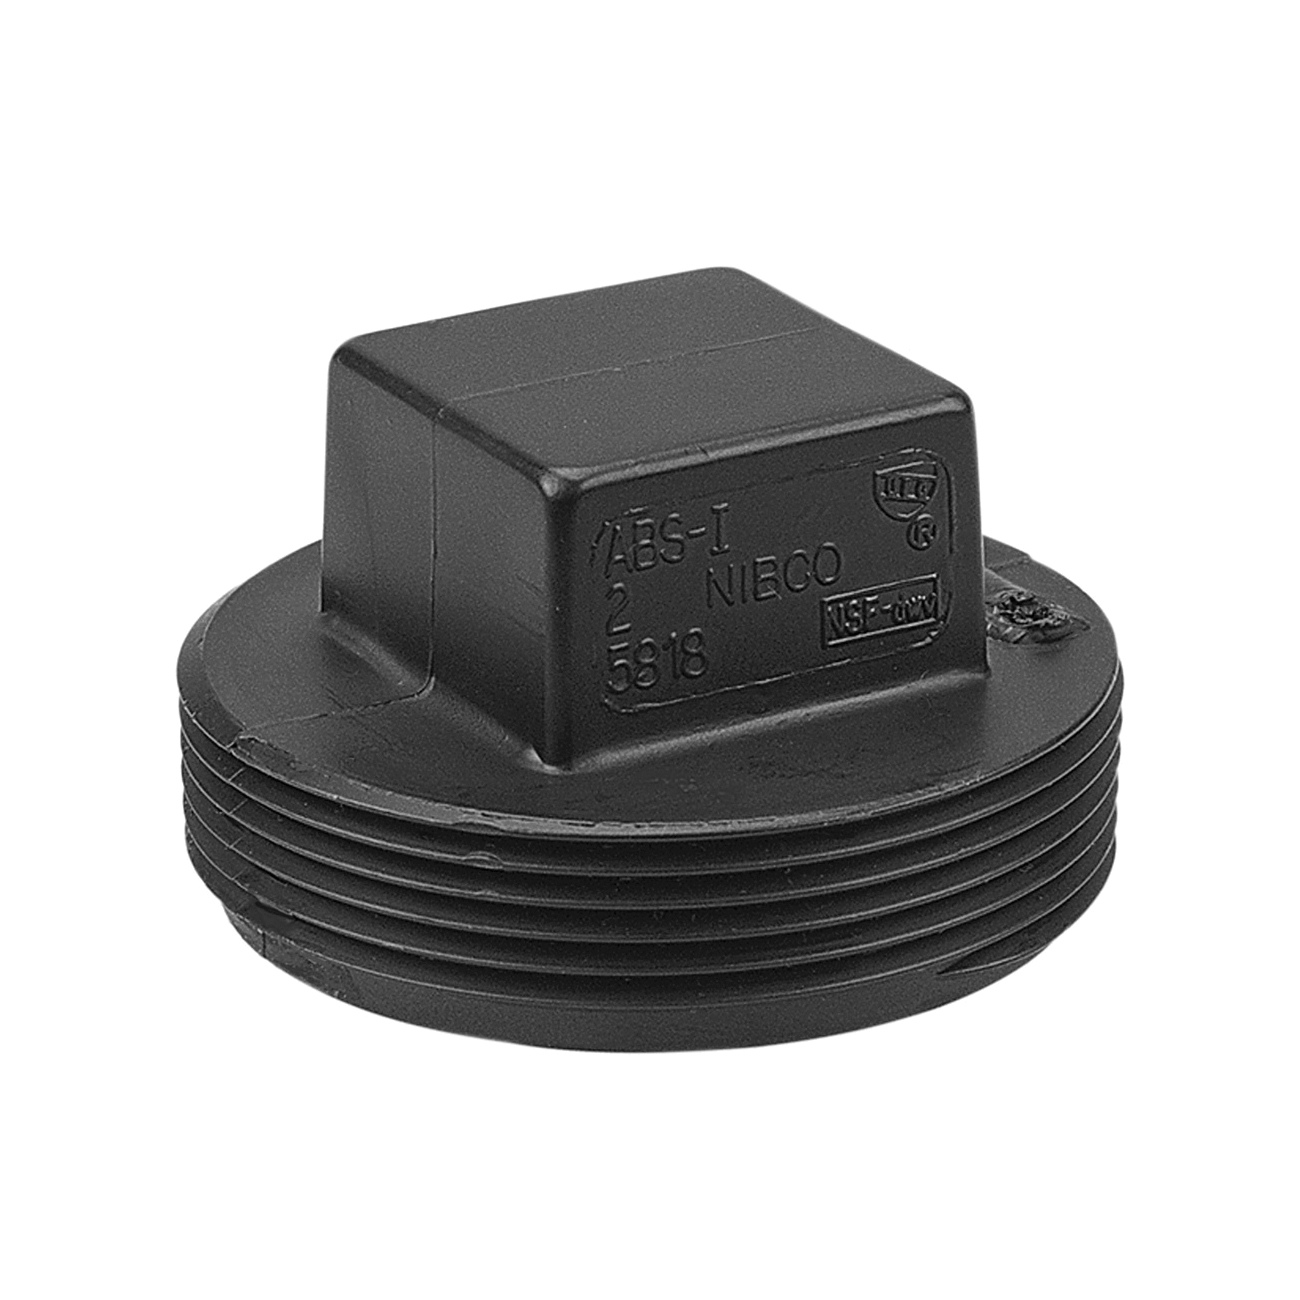 NIBCO® I177400 5818 DWV Plug, 4 in Nominal, MNPT End Style, ABS, Domestic